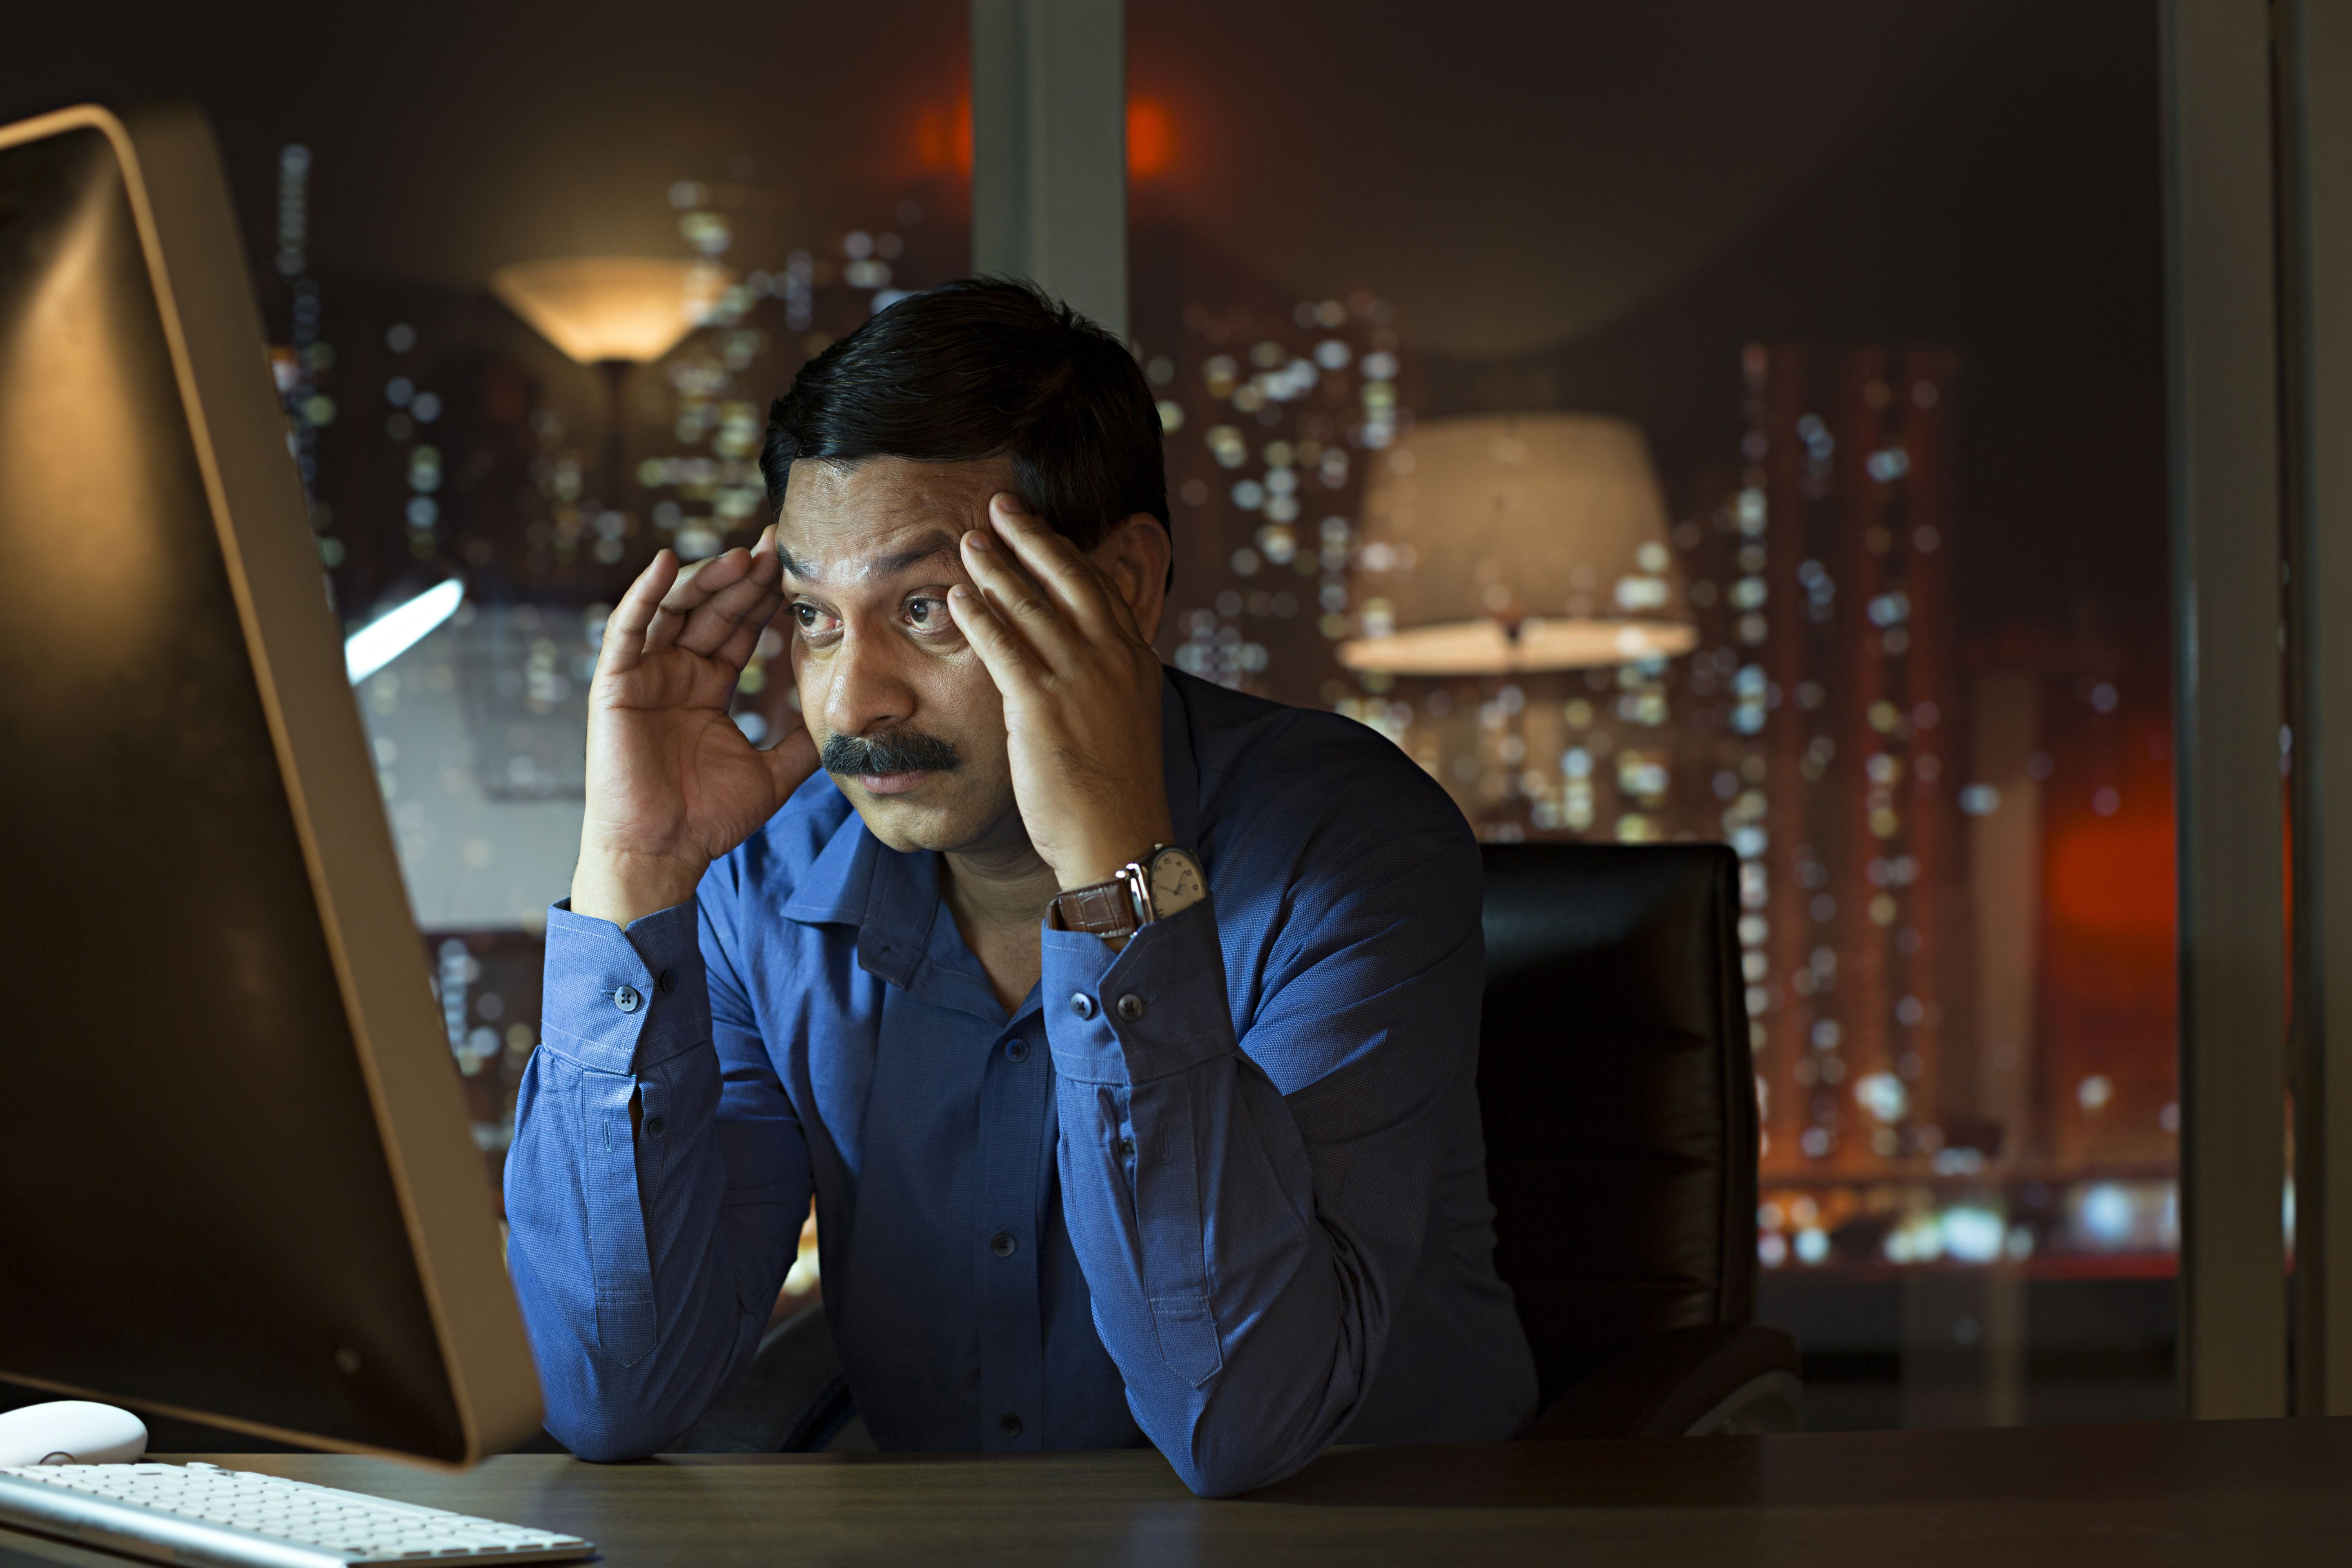 Lighting Type Could Cause Migraines At Work